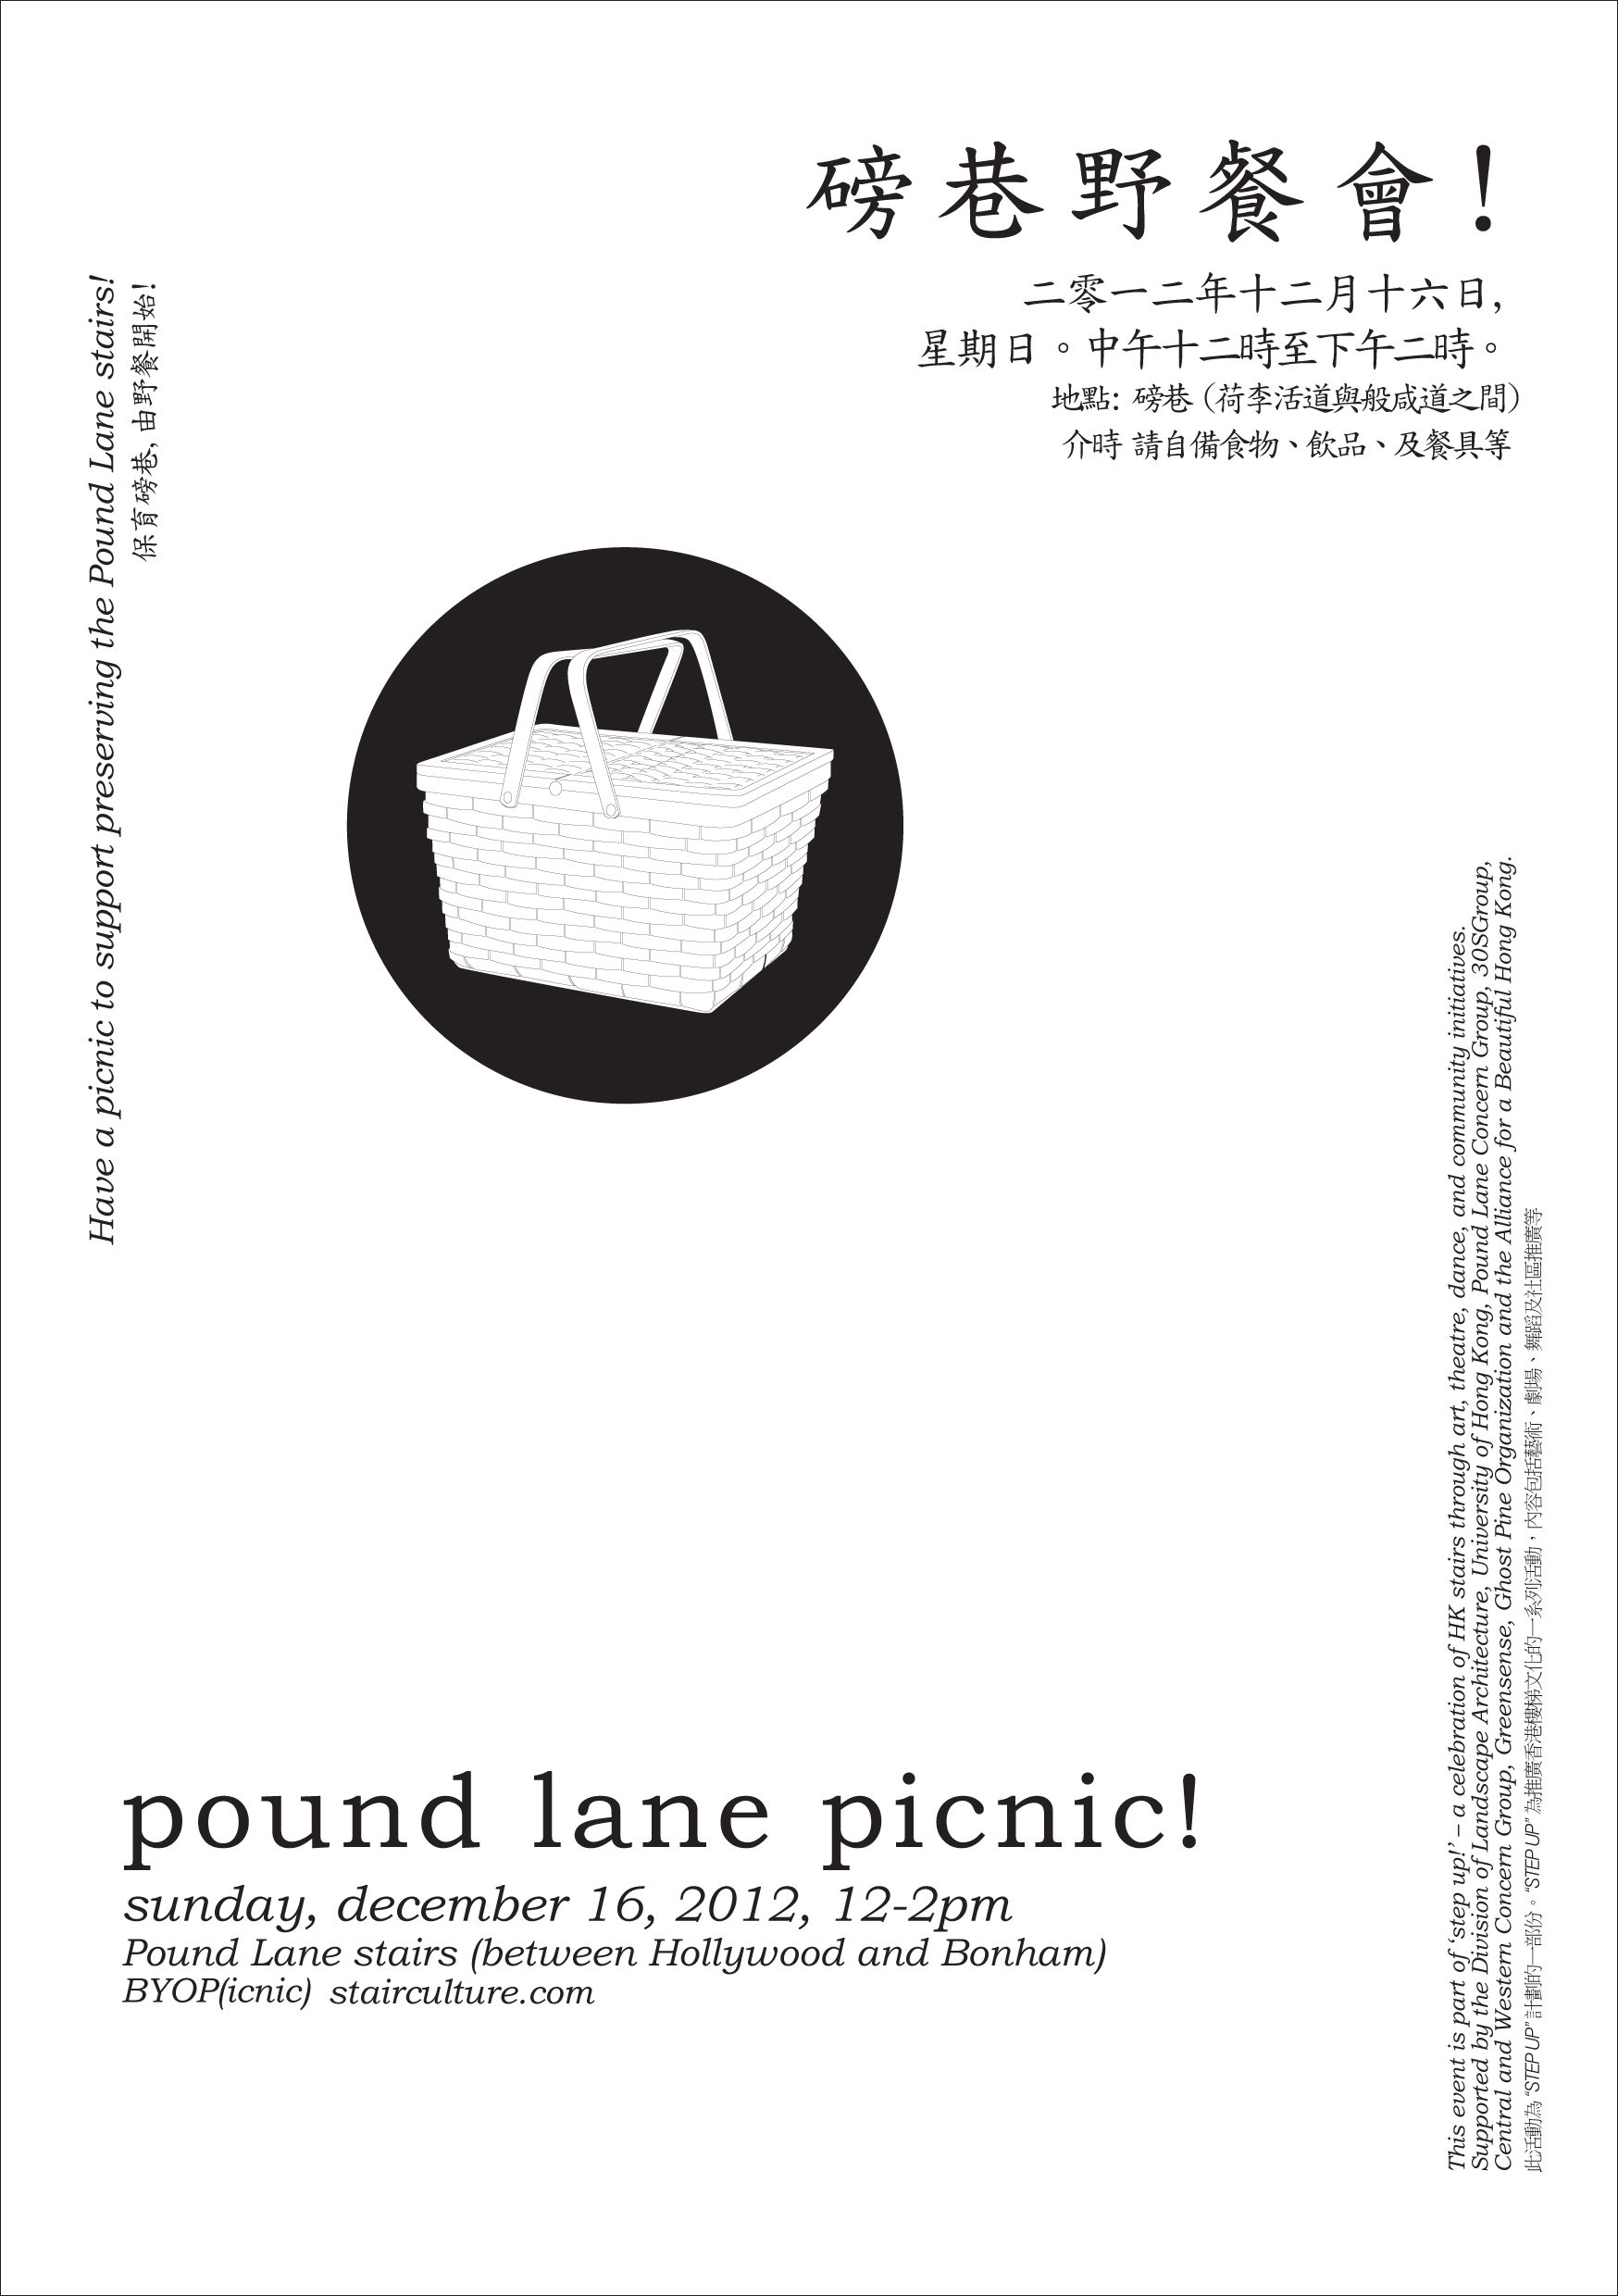 pound lane picnic! 磅巷野餐會!